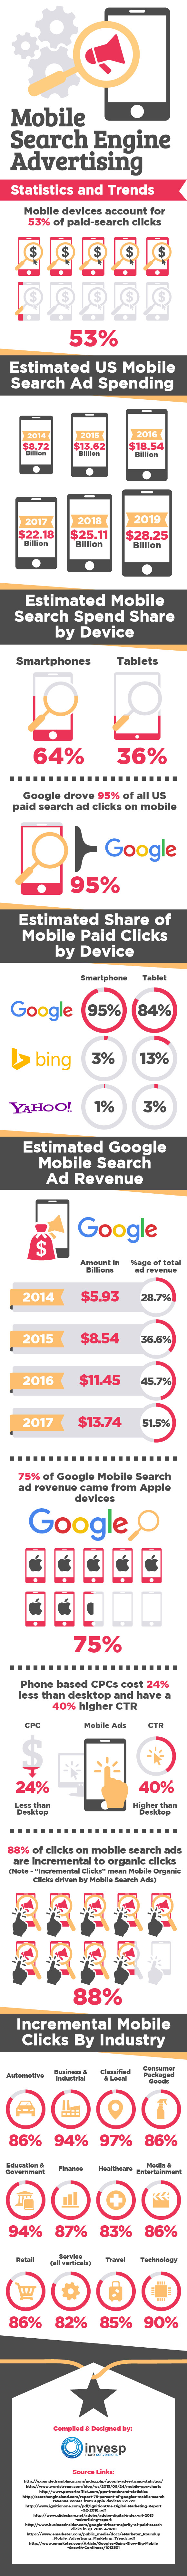 Mobile Search Engine Advertising is the Way to Go [Infographic]